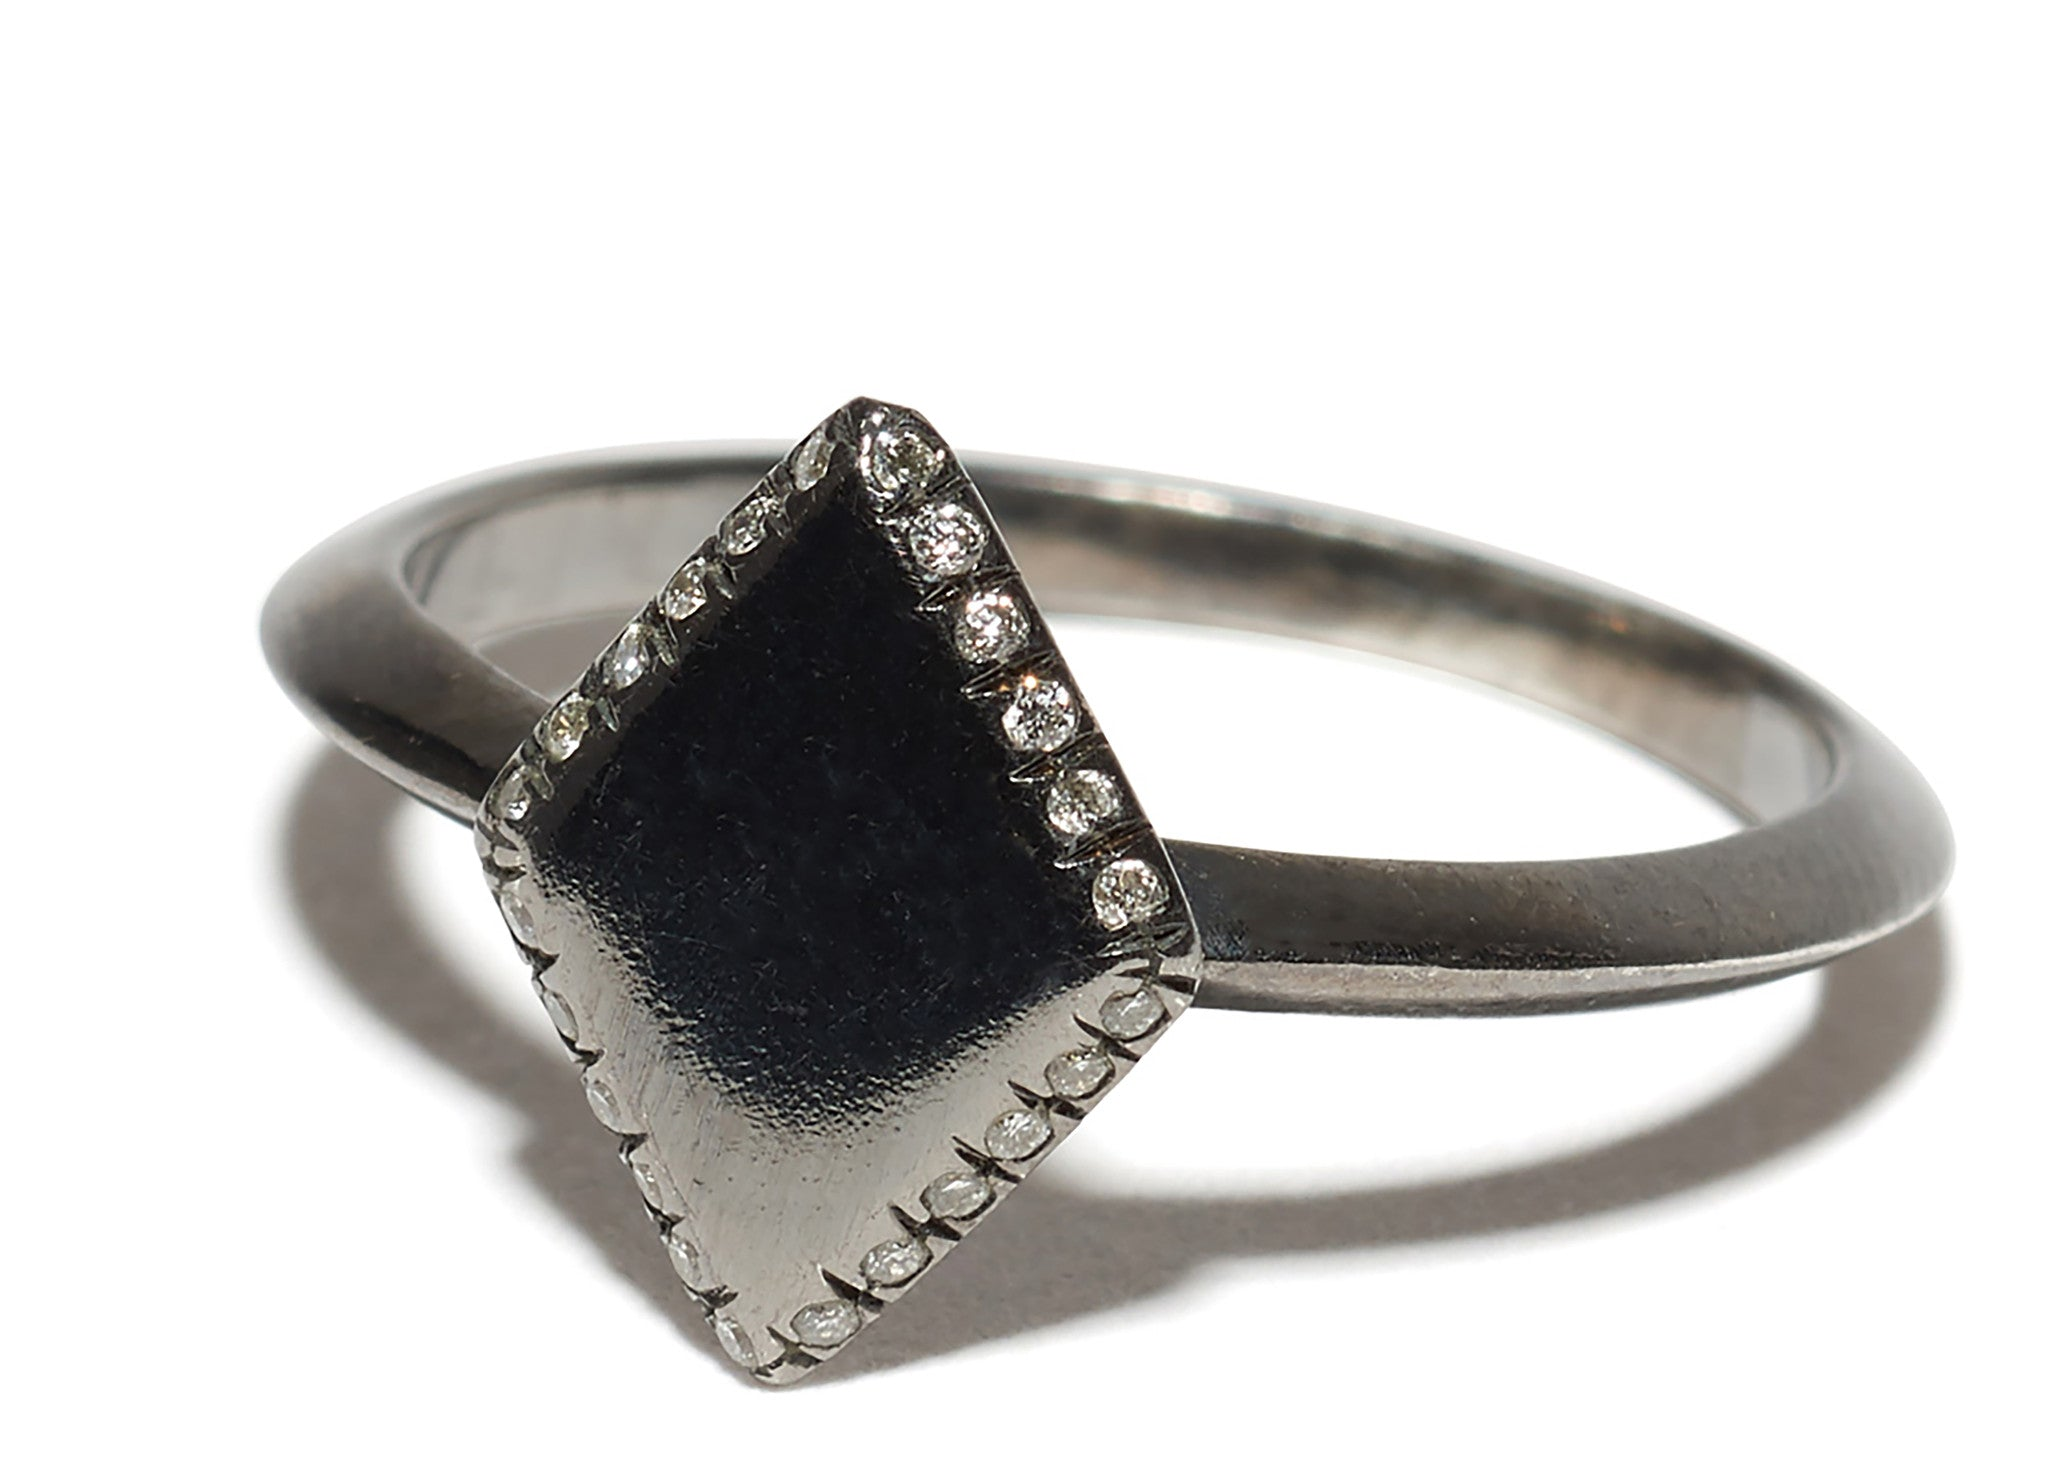 Micro Pave Edge Diamond Shape Engraved Initial Monogram Ring Wendy Nichol handmade in NYC